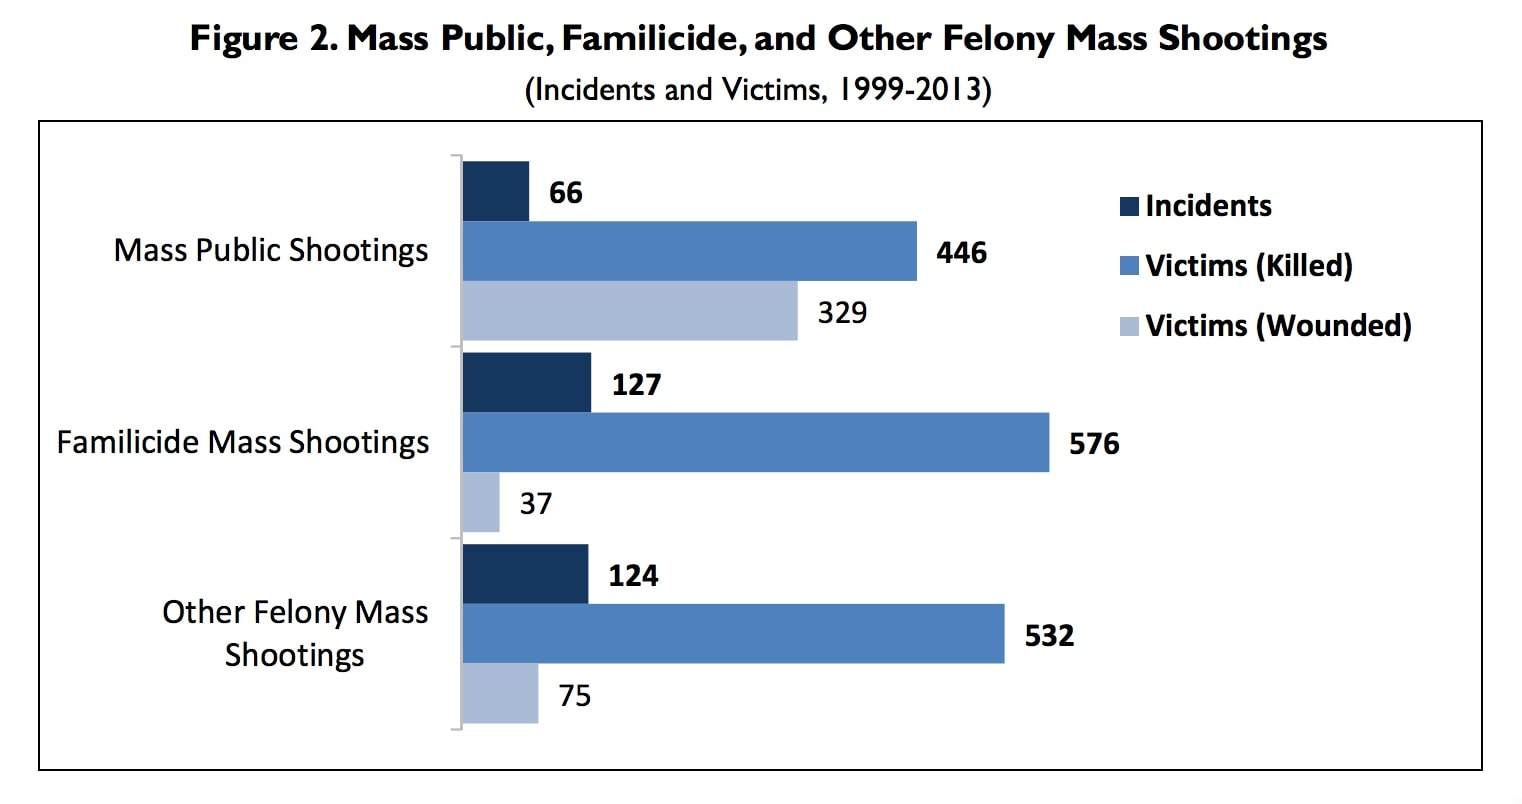 Source: CRS analysis of FBI Supplementary Homicide Reports, press accounts, agency press releases, and other compilations by mass media and advocacy groups